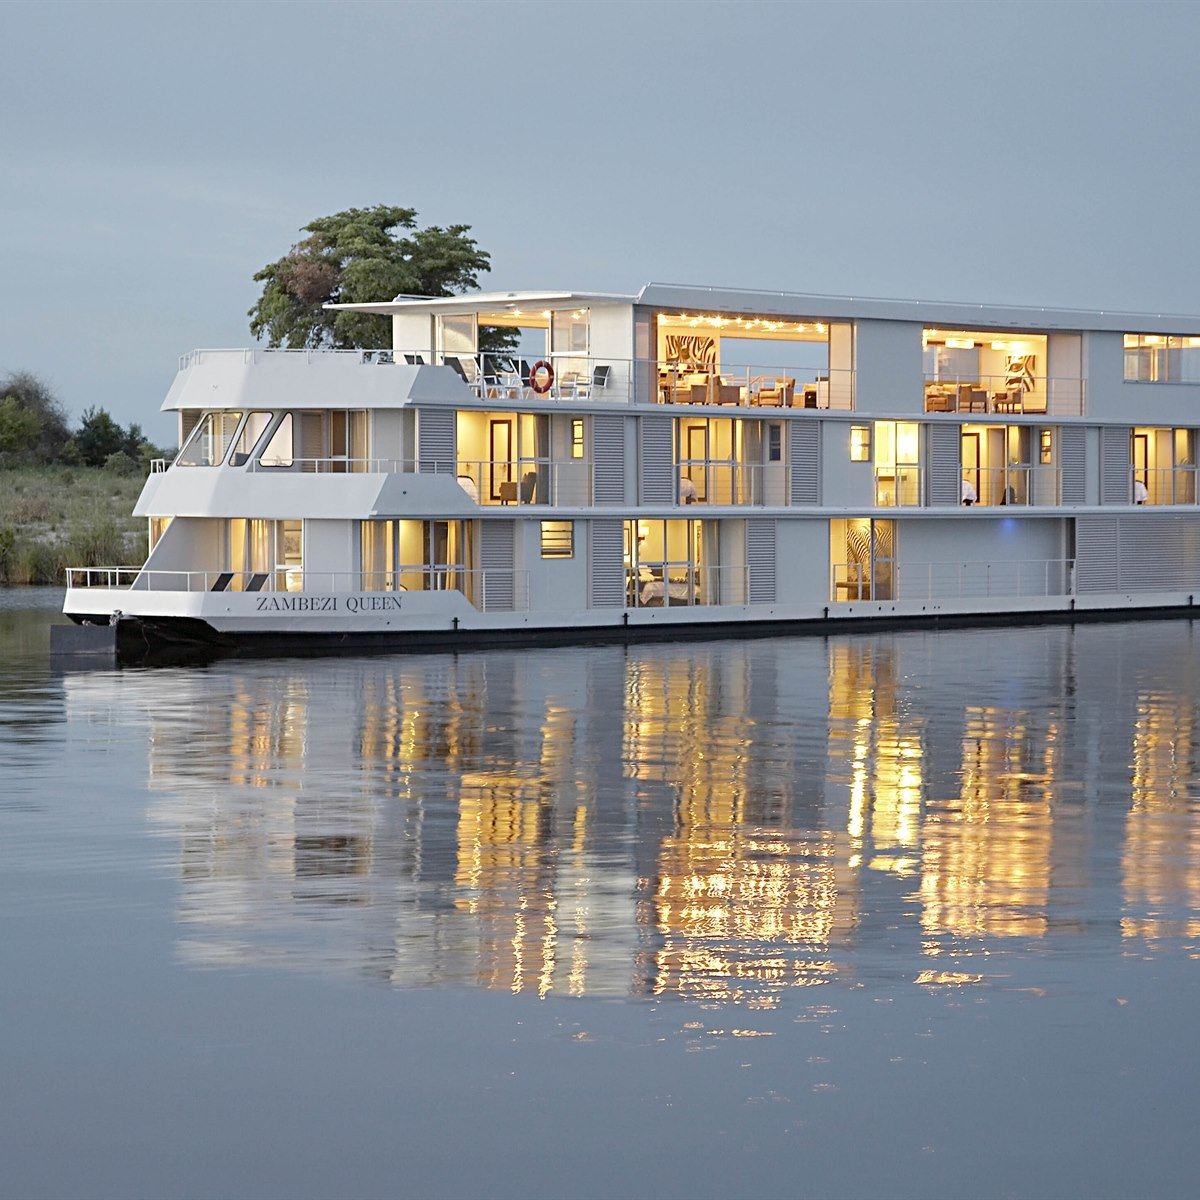 Best Holiday Destinations Victoria: South Africa, Rovos Rail, Victoria Falls, Botswana